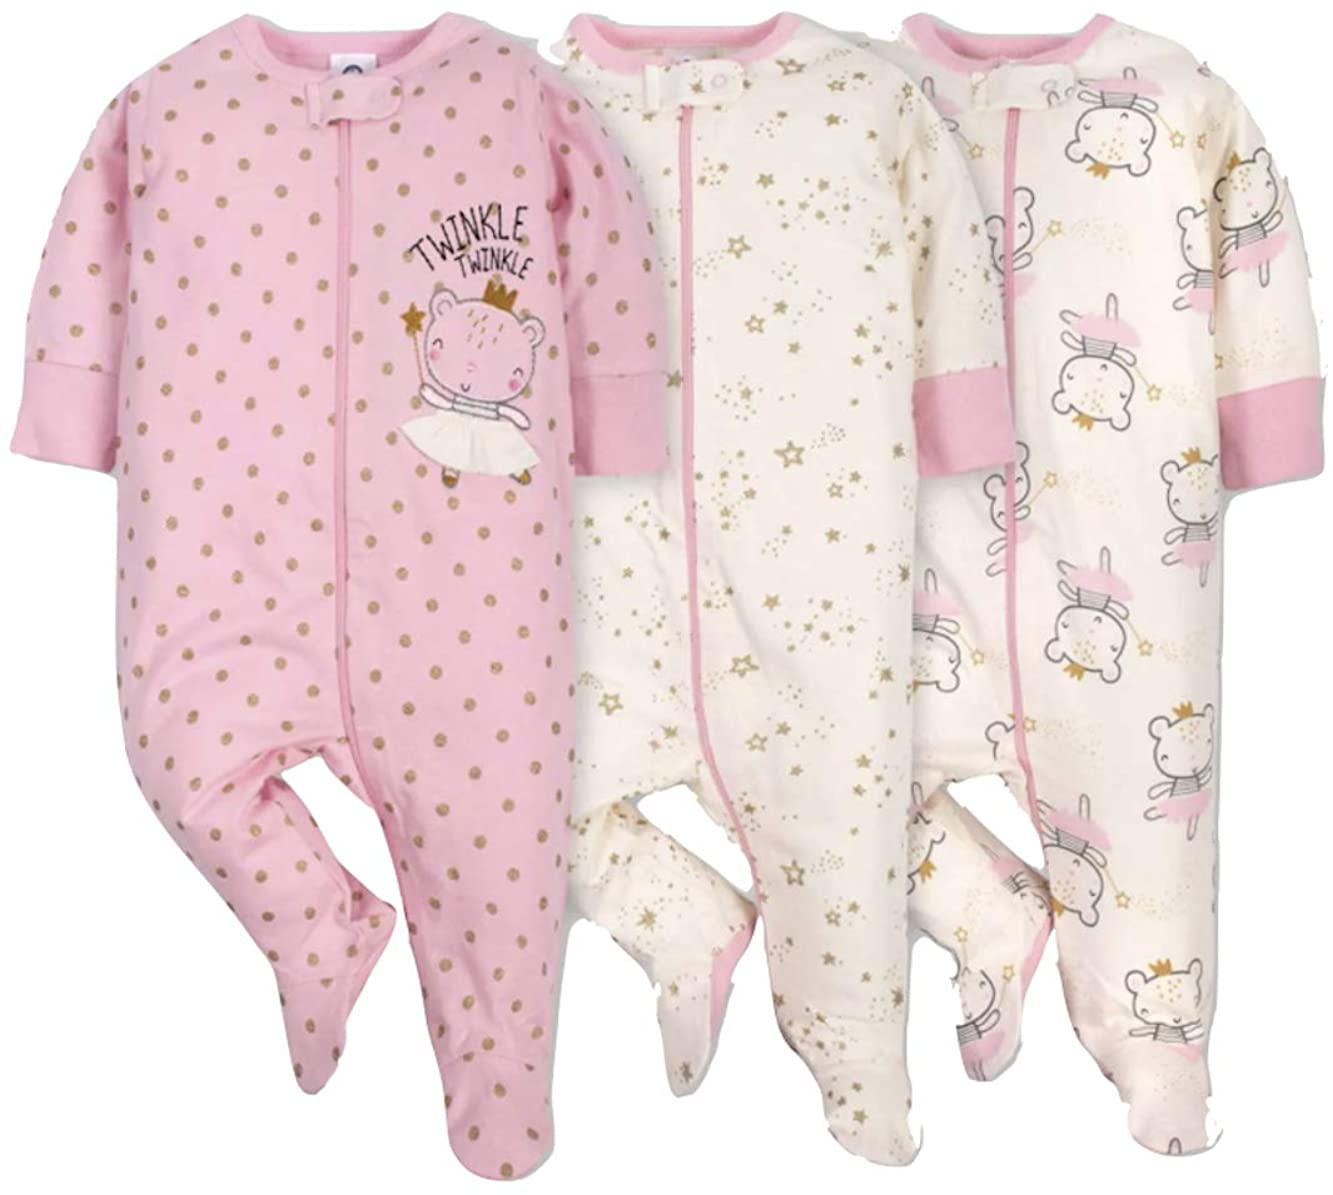 GERBER Baby Girls' 3pk Princess Sleep N' Play Pajamas - Pink/Ivory, 0-3 Months